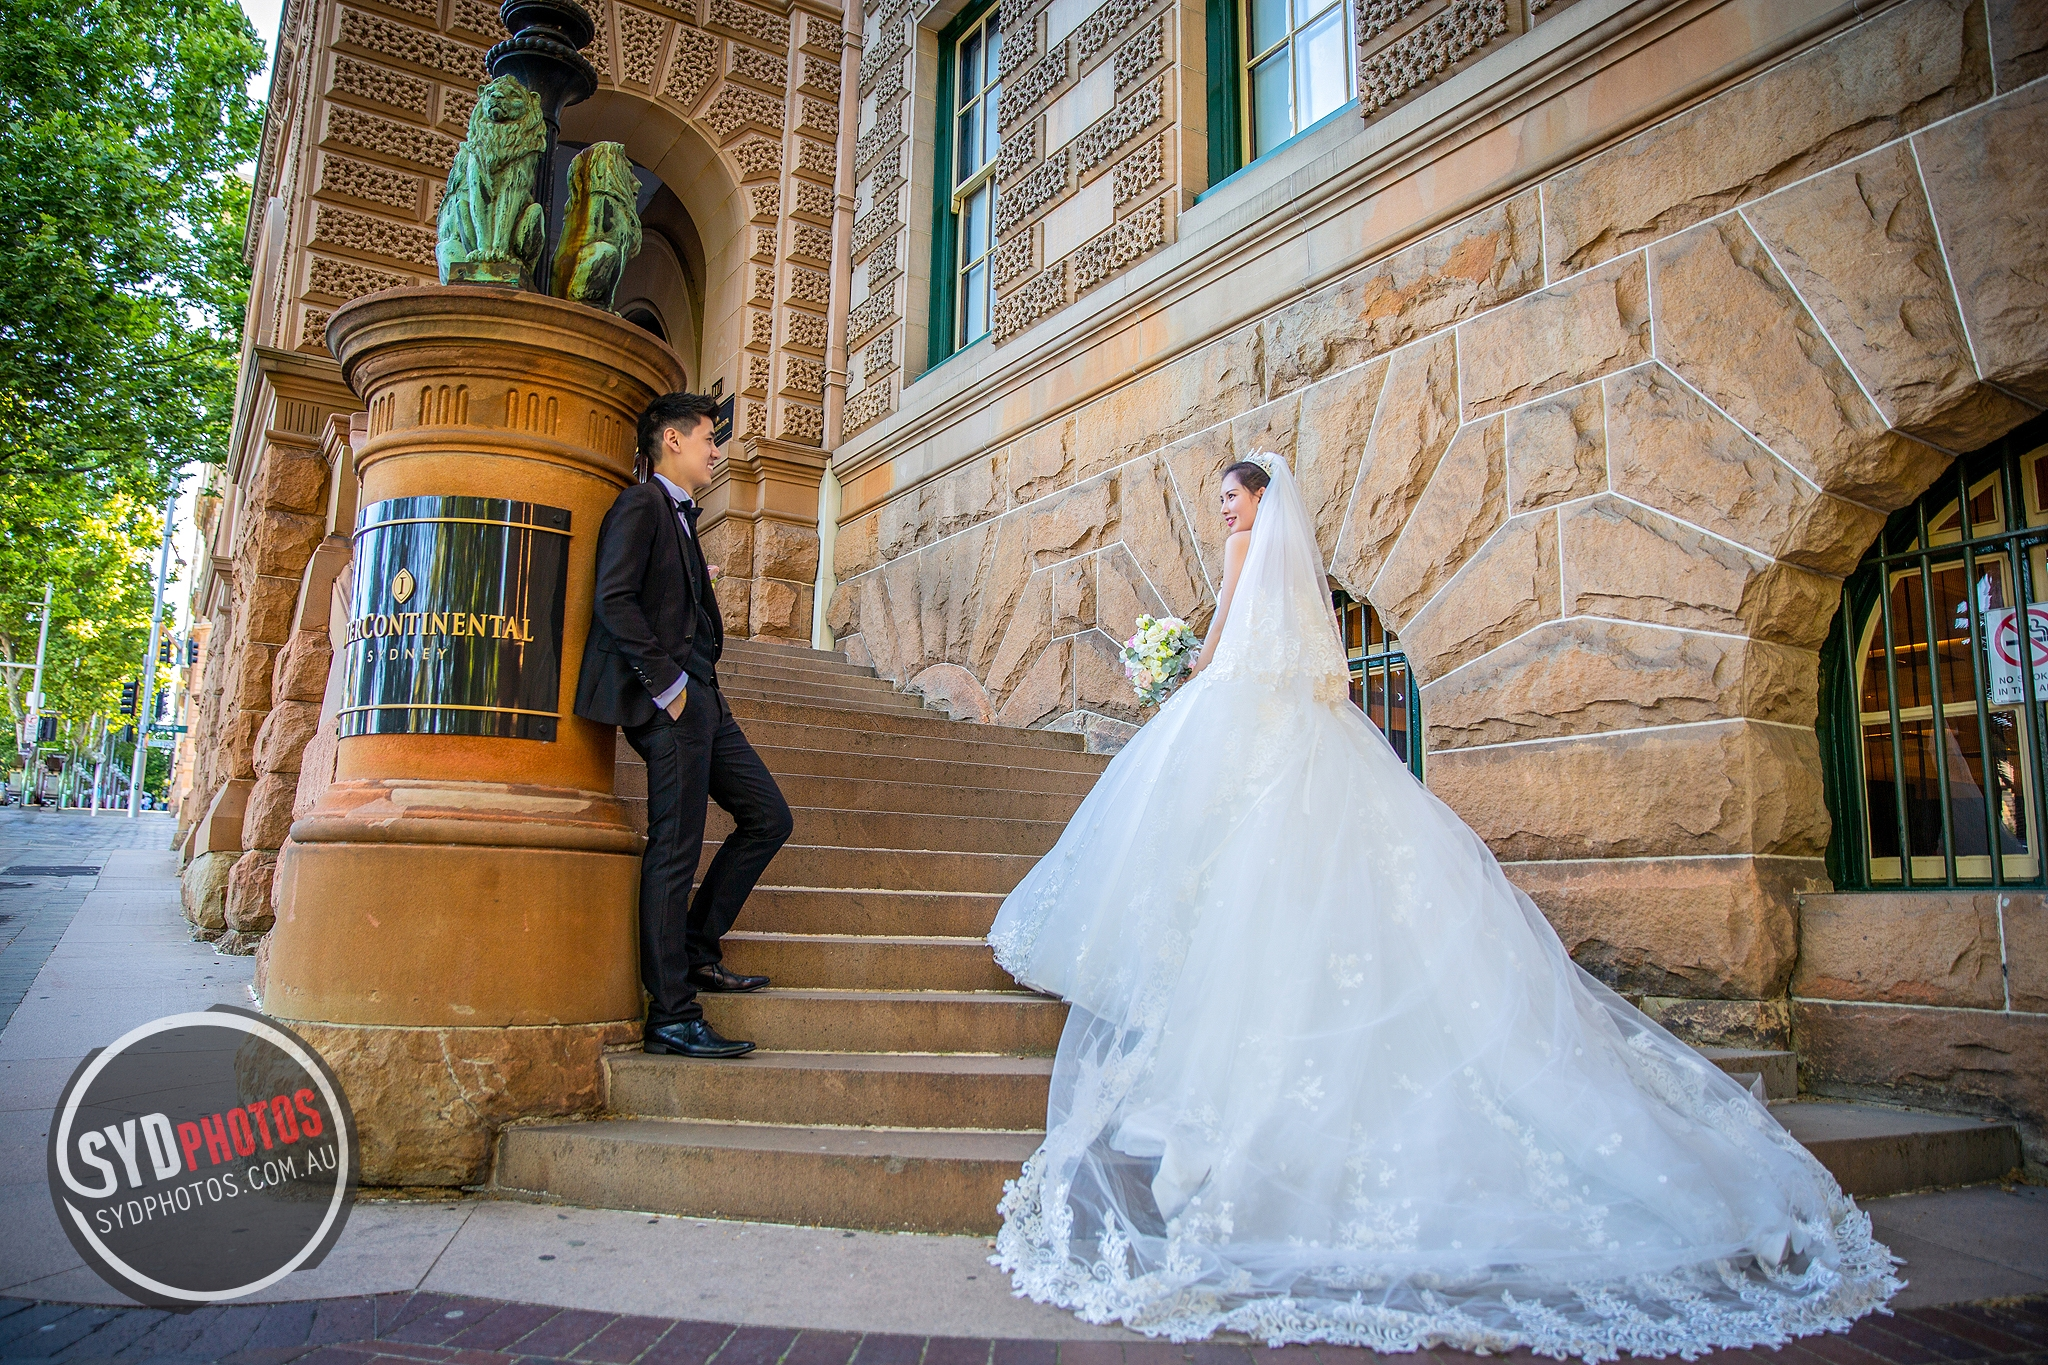 ID-10119120181111-zora&唐宝-jpg (249).jpg, By Photographer Sydphotos.wedding, Created on 11 Mar 2019, SYDPHOTOS Photography all rights reserved.